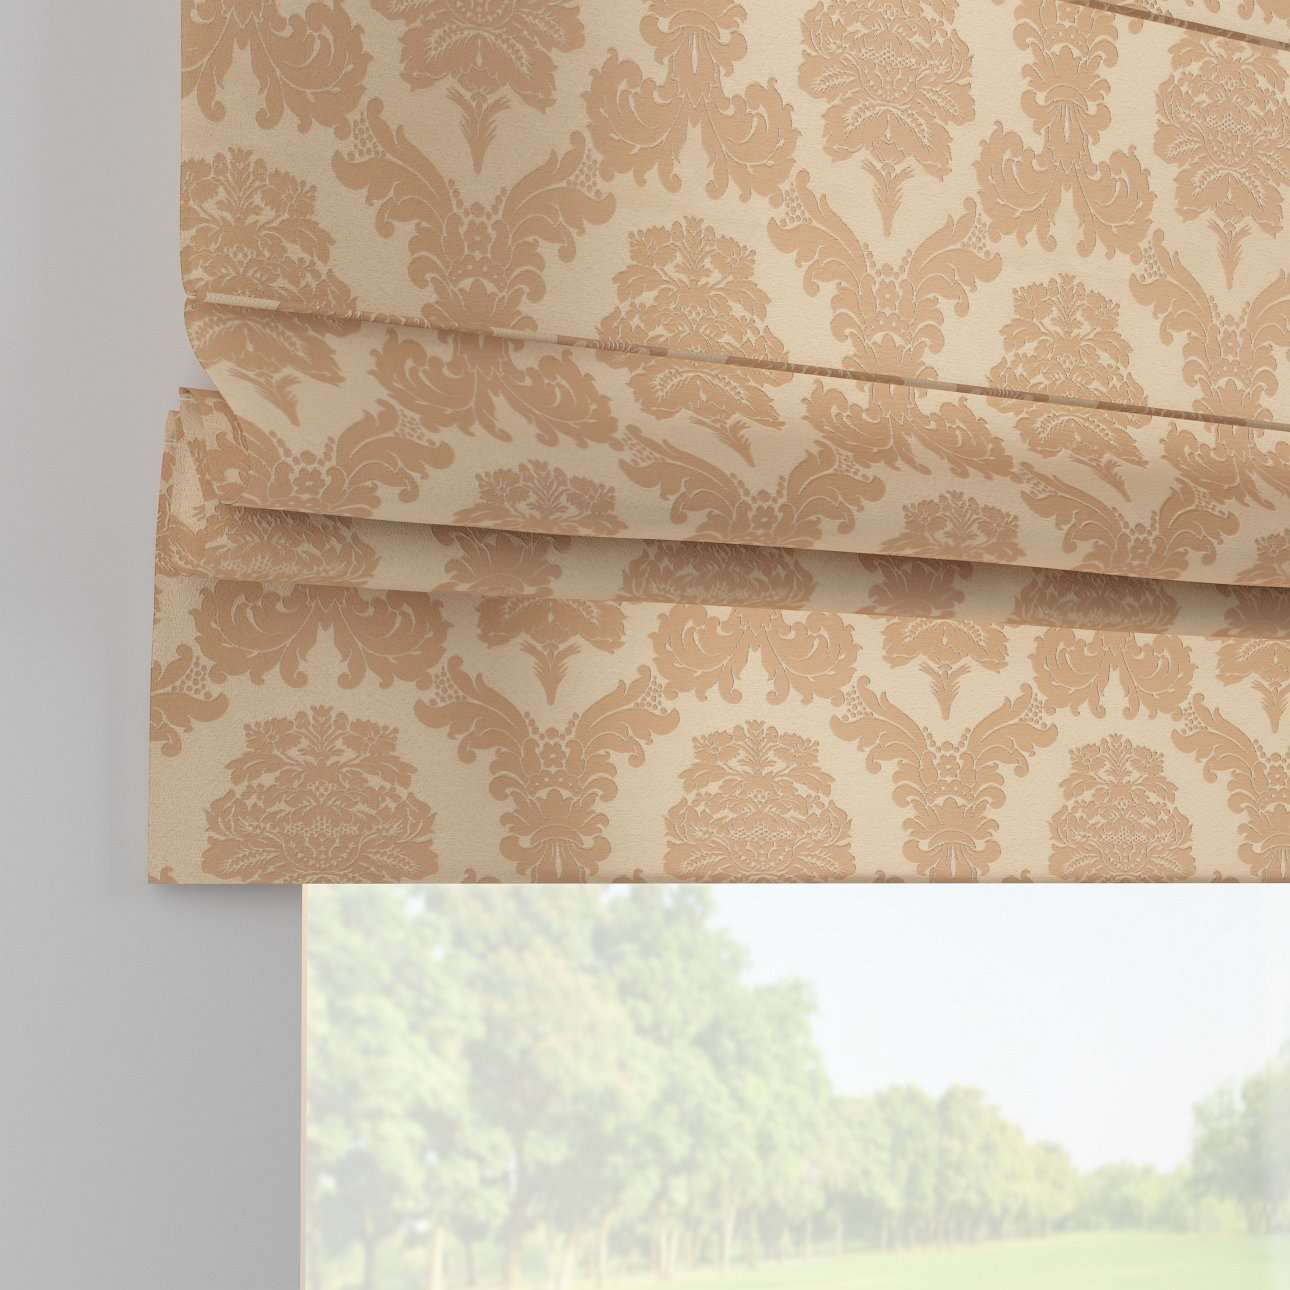 Padva roman blind  80 × 170 cm (31.5 × 67 inch) in collection Damasco, fabric: 613-04